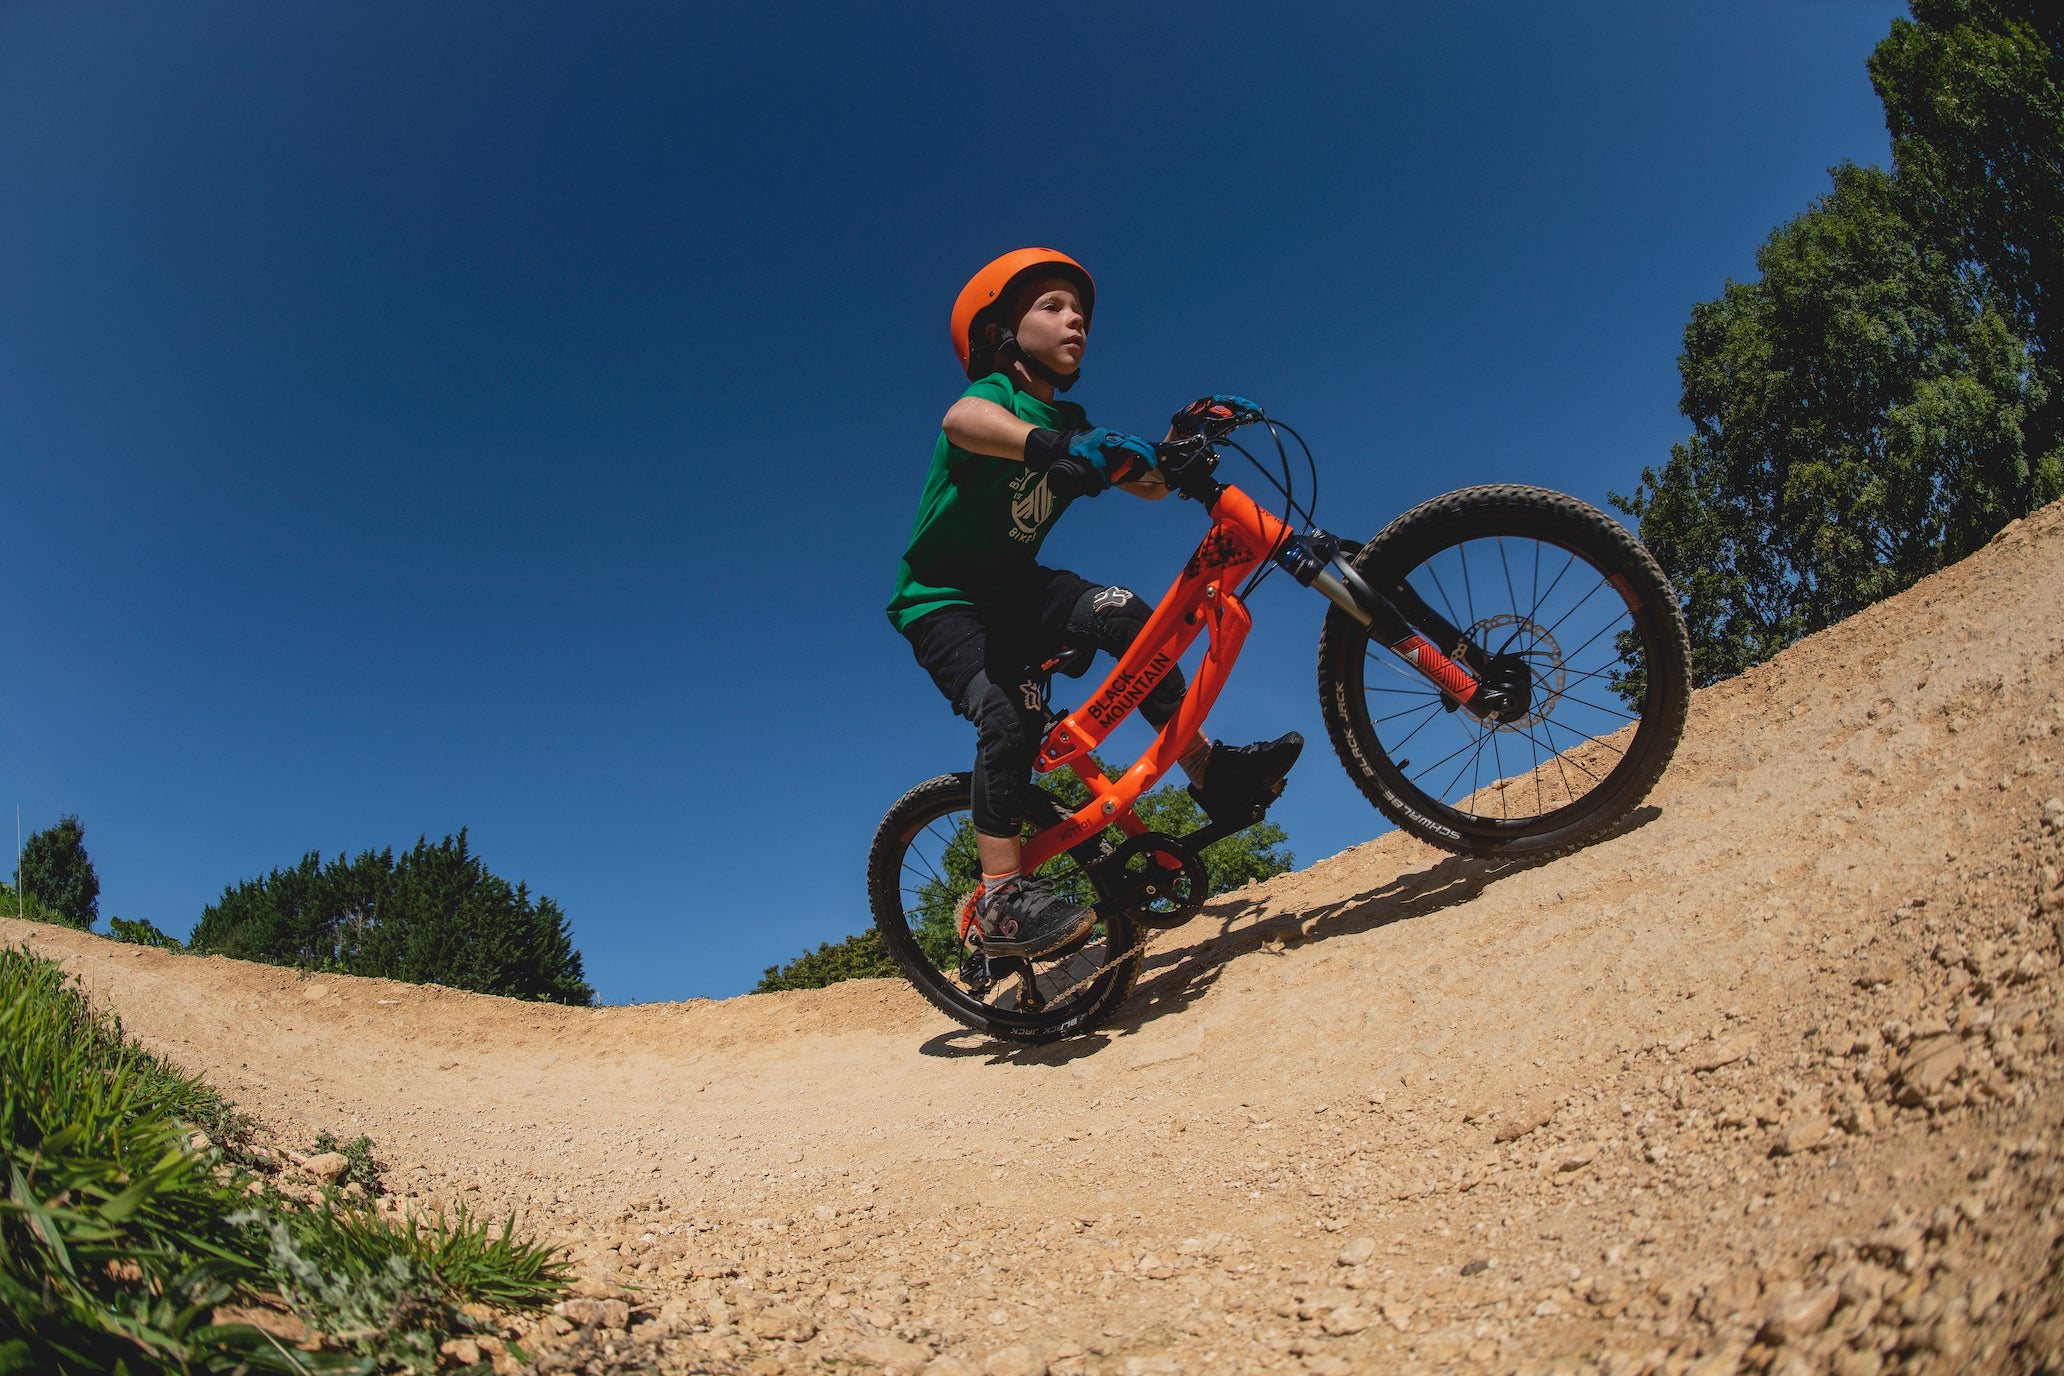 Child riding mountain bike on berm